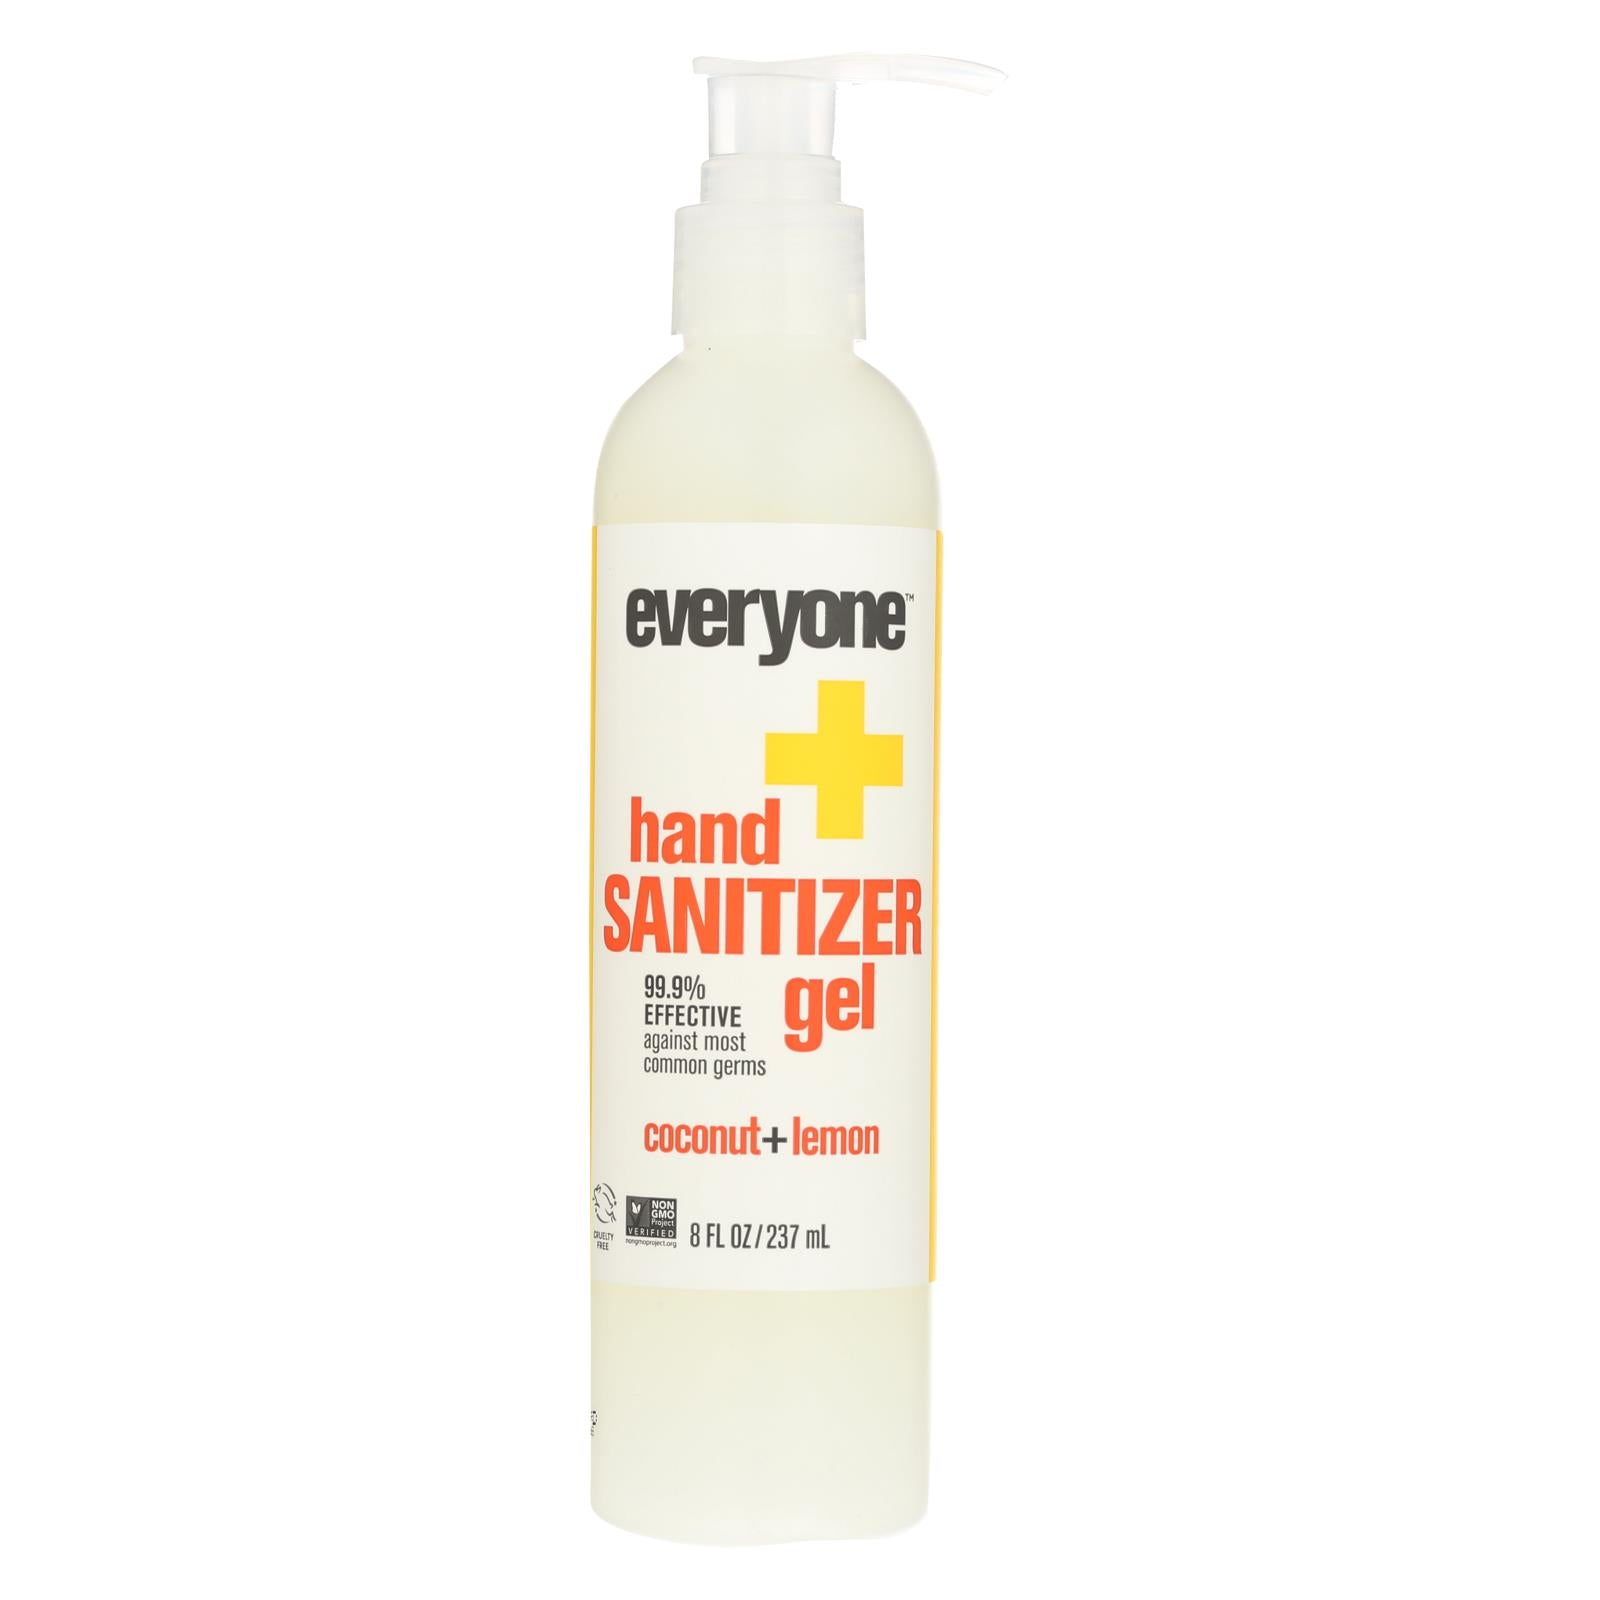 Everyone Hand Sanitizer Gel - Natural - Coconut And Lemon - 8 Oz